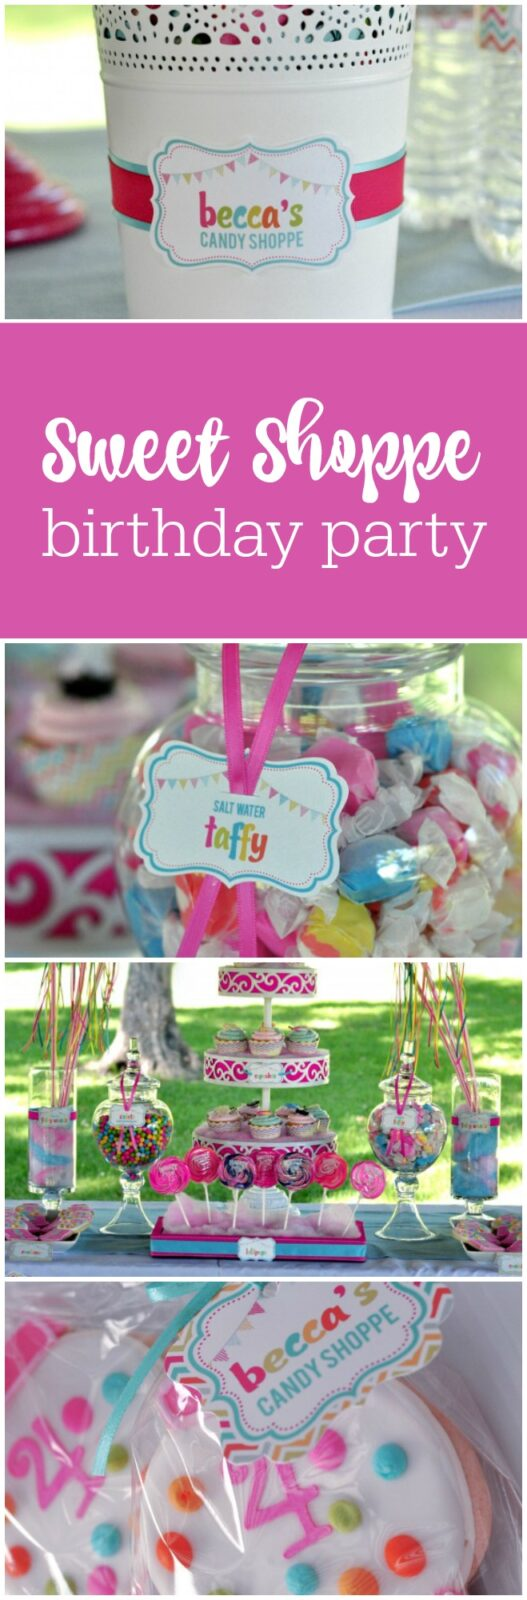 Sweet Shoppe 4th birthday party by BluGrass Designs featured on The Party Teacher